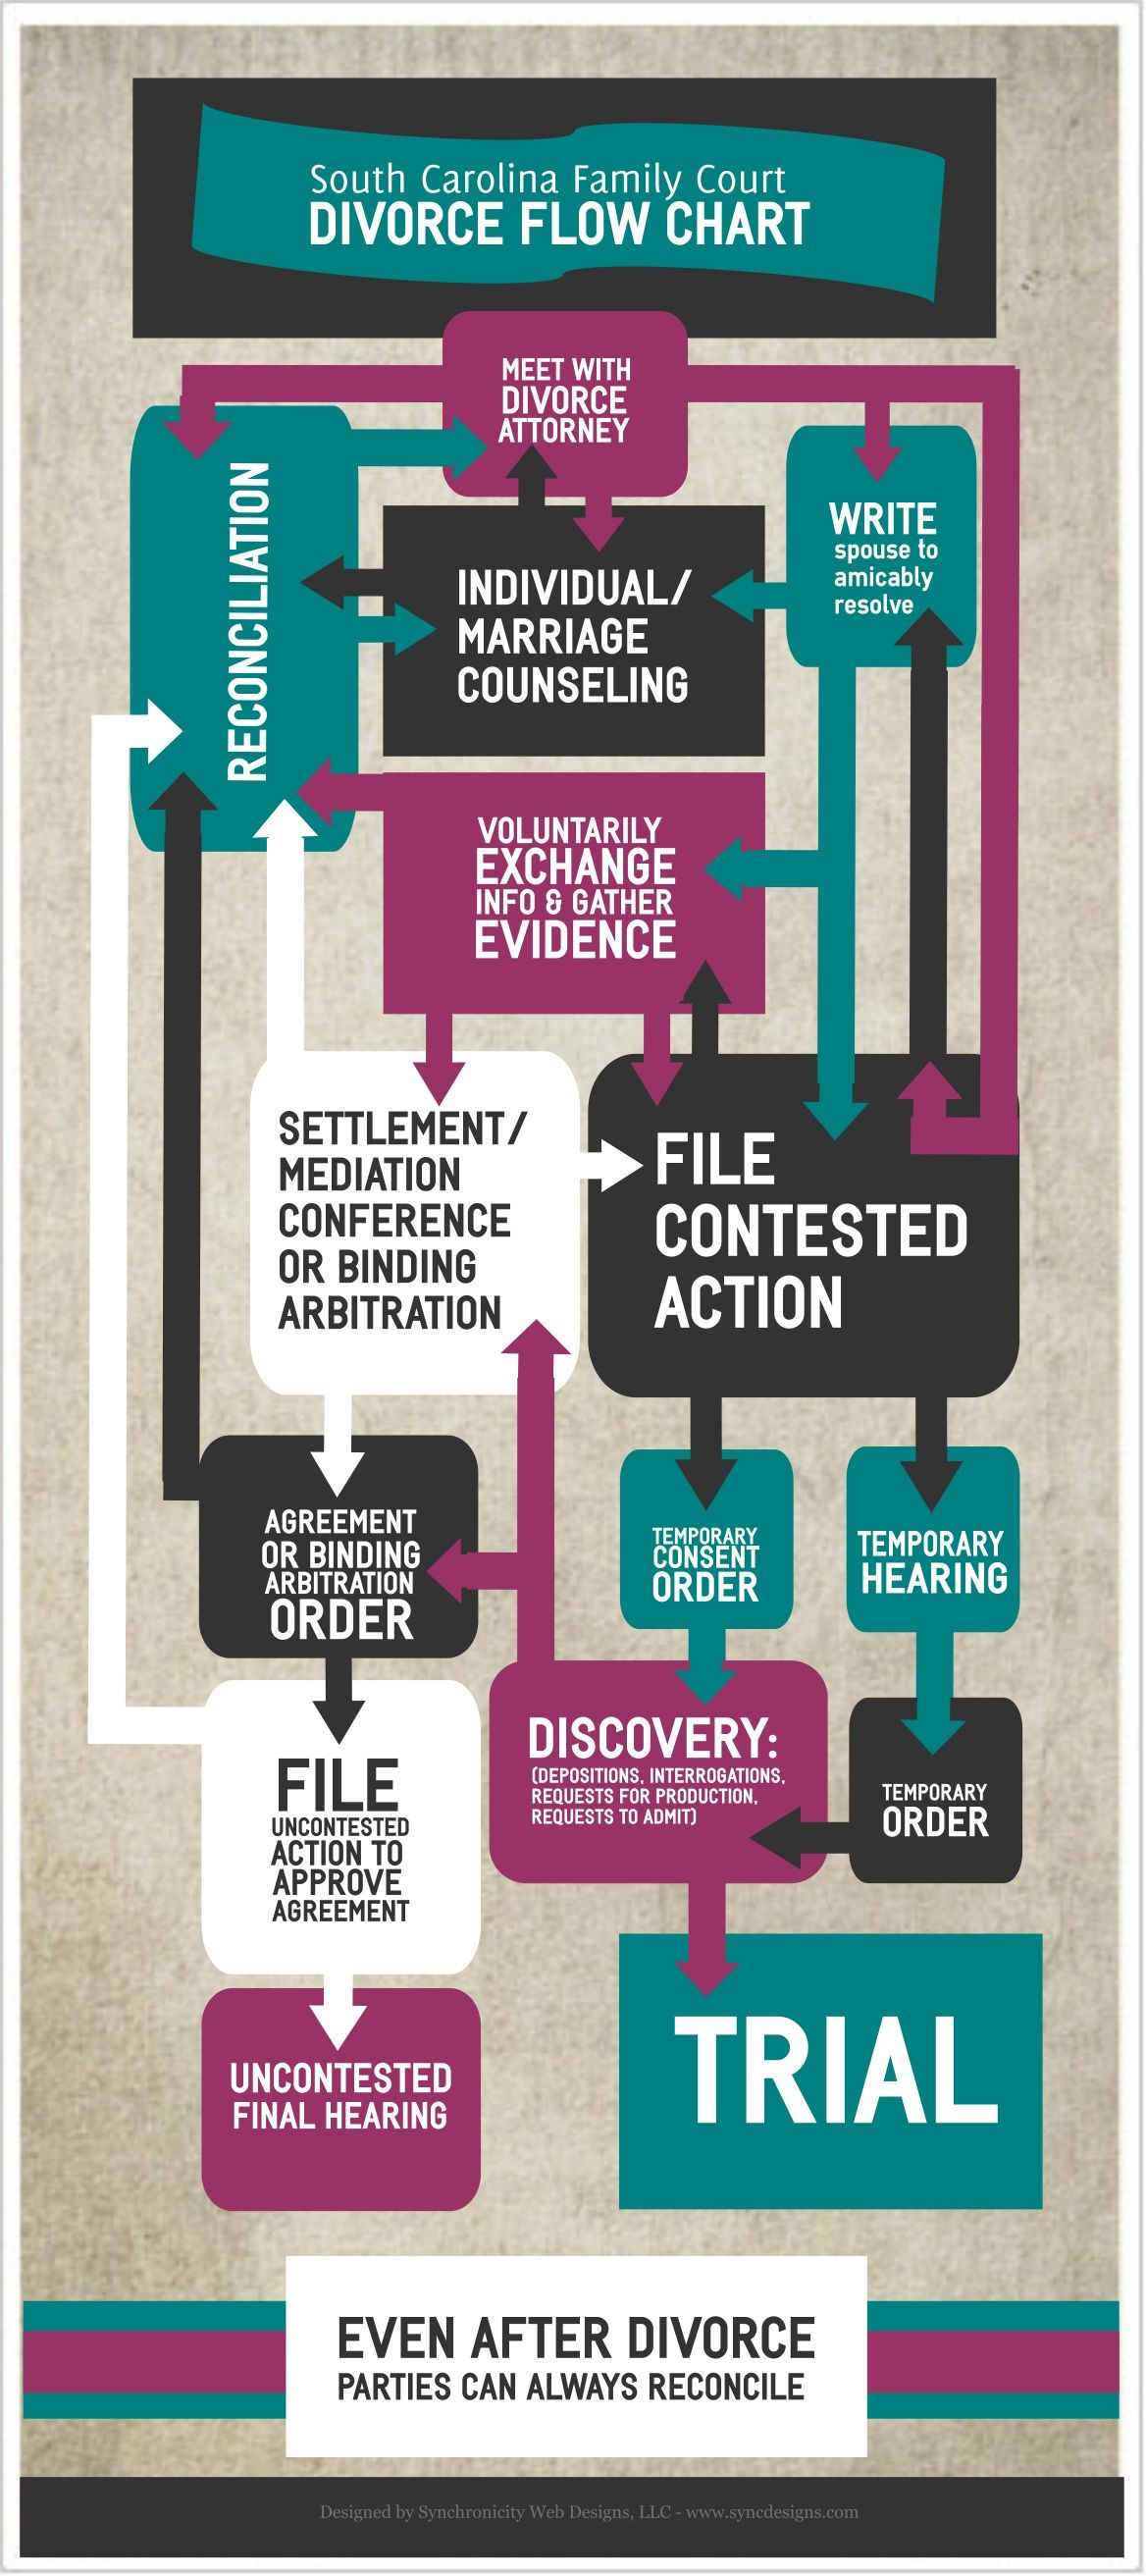 Divorce process flow chart infographic for the state of south car divorce process flow chart infographic for the state of south carolina learn more about our seo and digital marketing services including infographics solutioingenieria Images